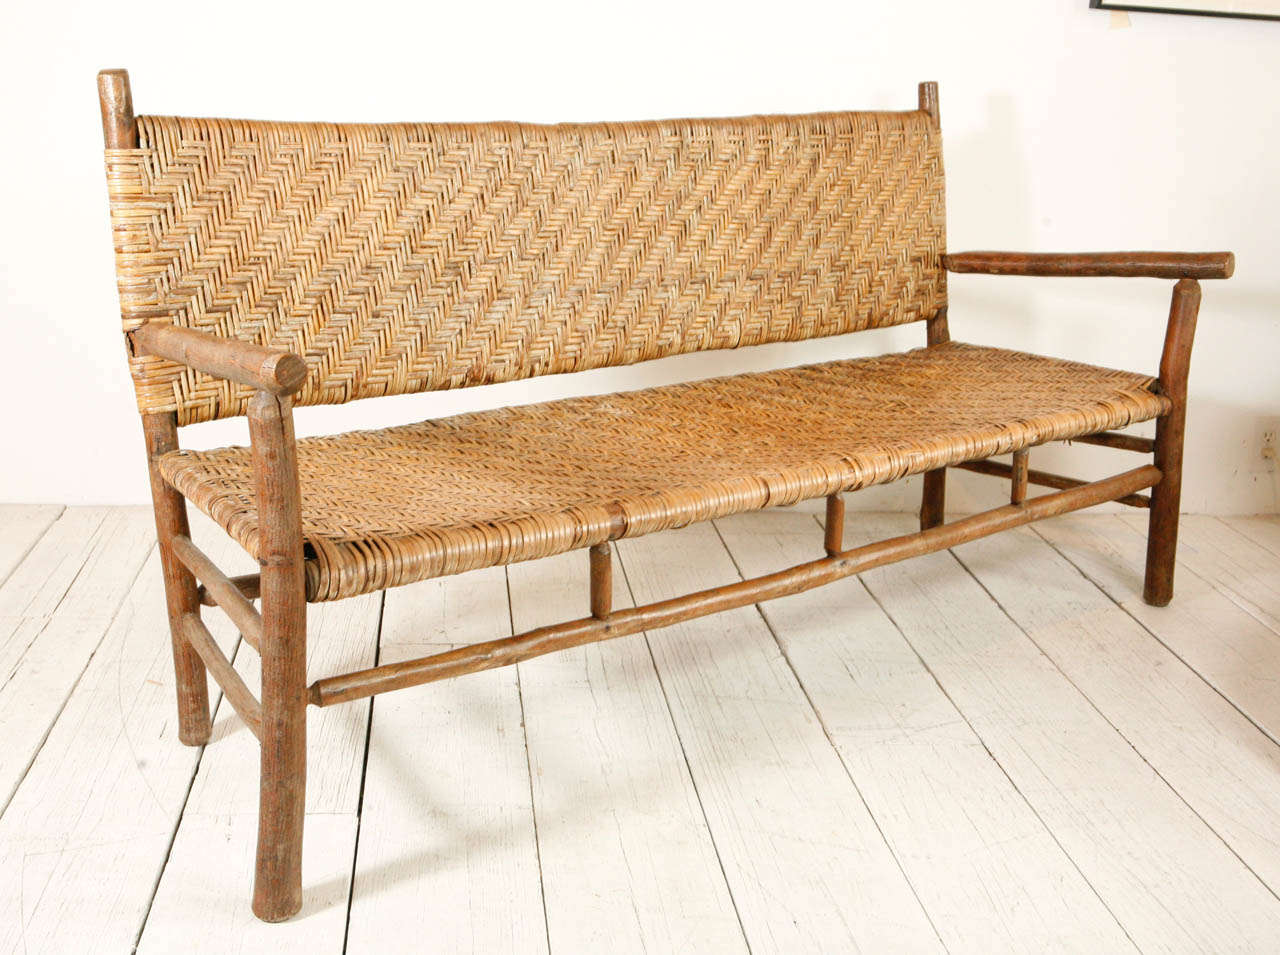 1920s Hickory Settee With Woven Seat And Back At 1stdibs